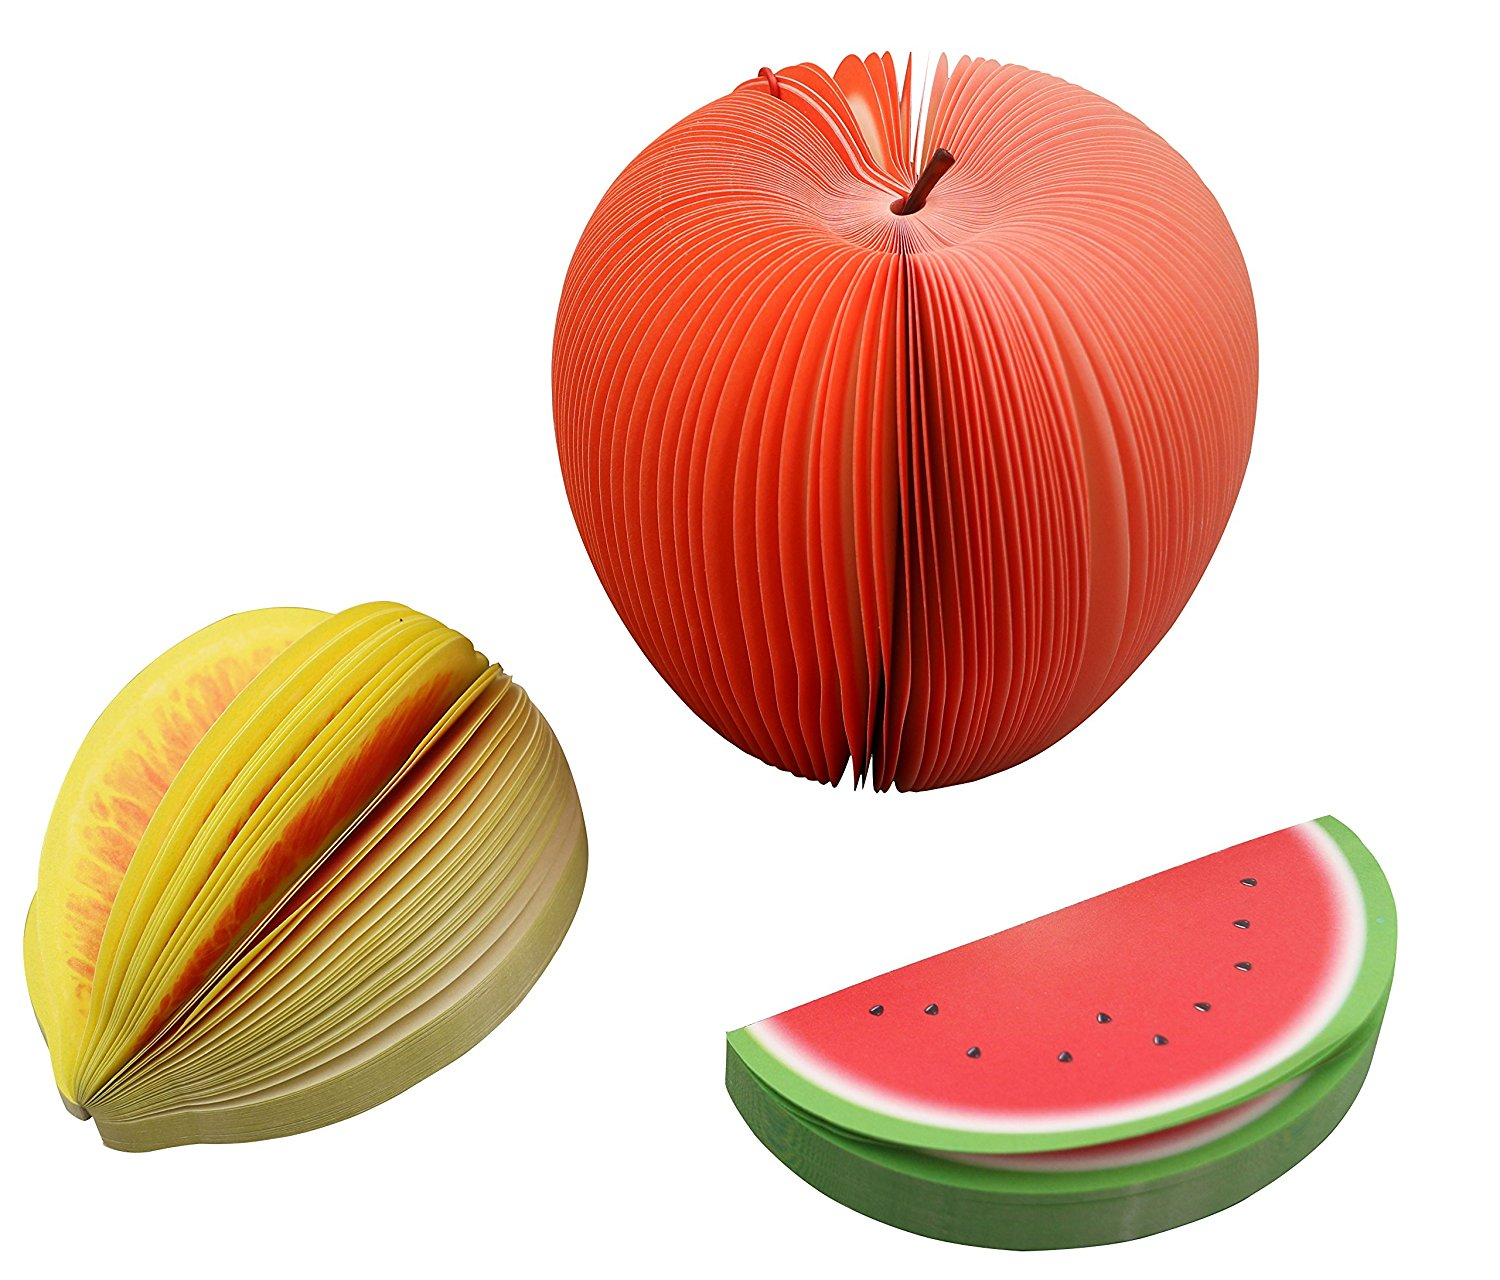 Memo Notes 3D Fruit Shape Non-Sticky, Cute DIY Memo Pads, Kawaii Colorful Fruit Stationery, Creative Three-dimensional Table Decoration Post Notepads, Pack of 3 ( Apple/ Lemon/ Watermelon )